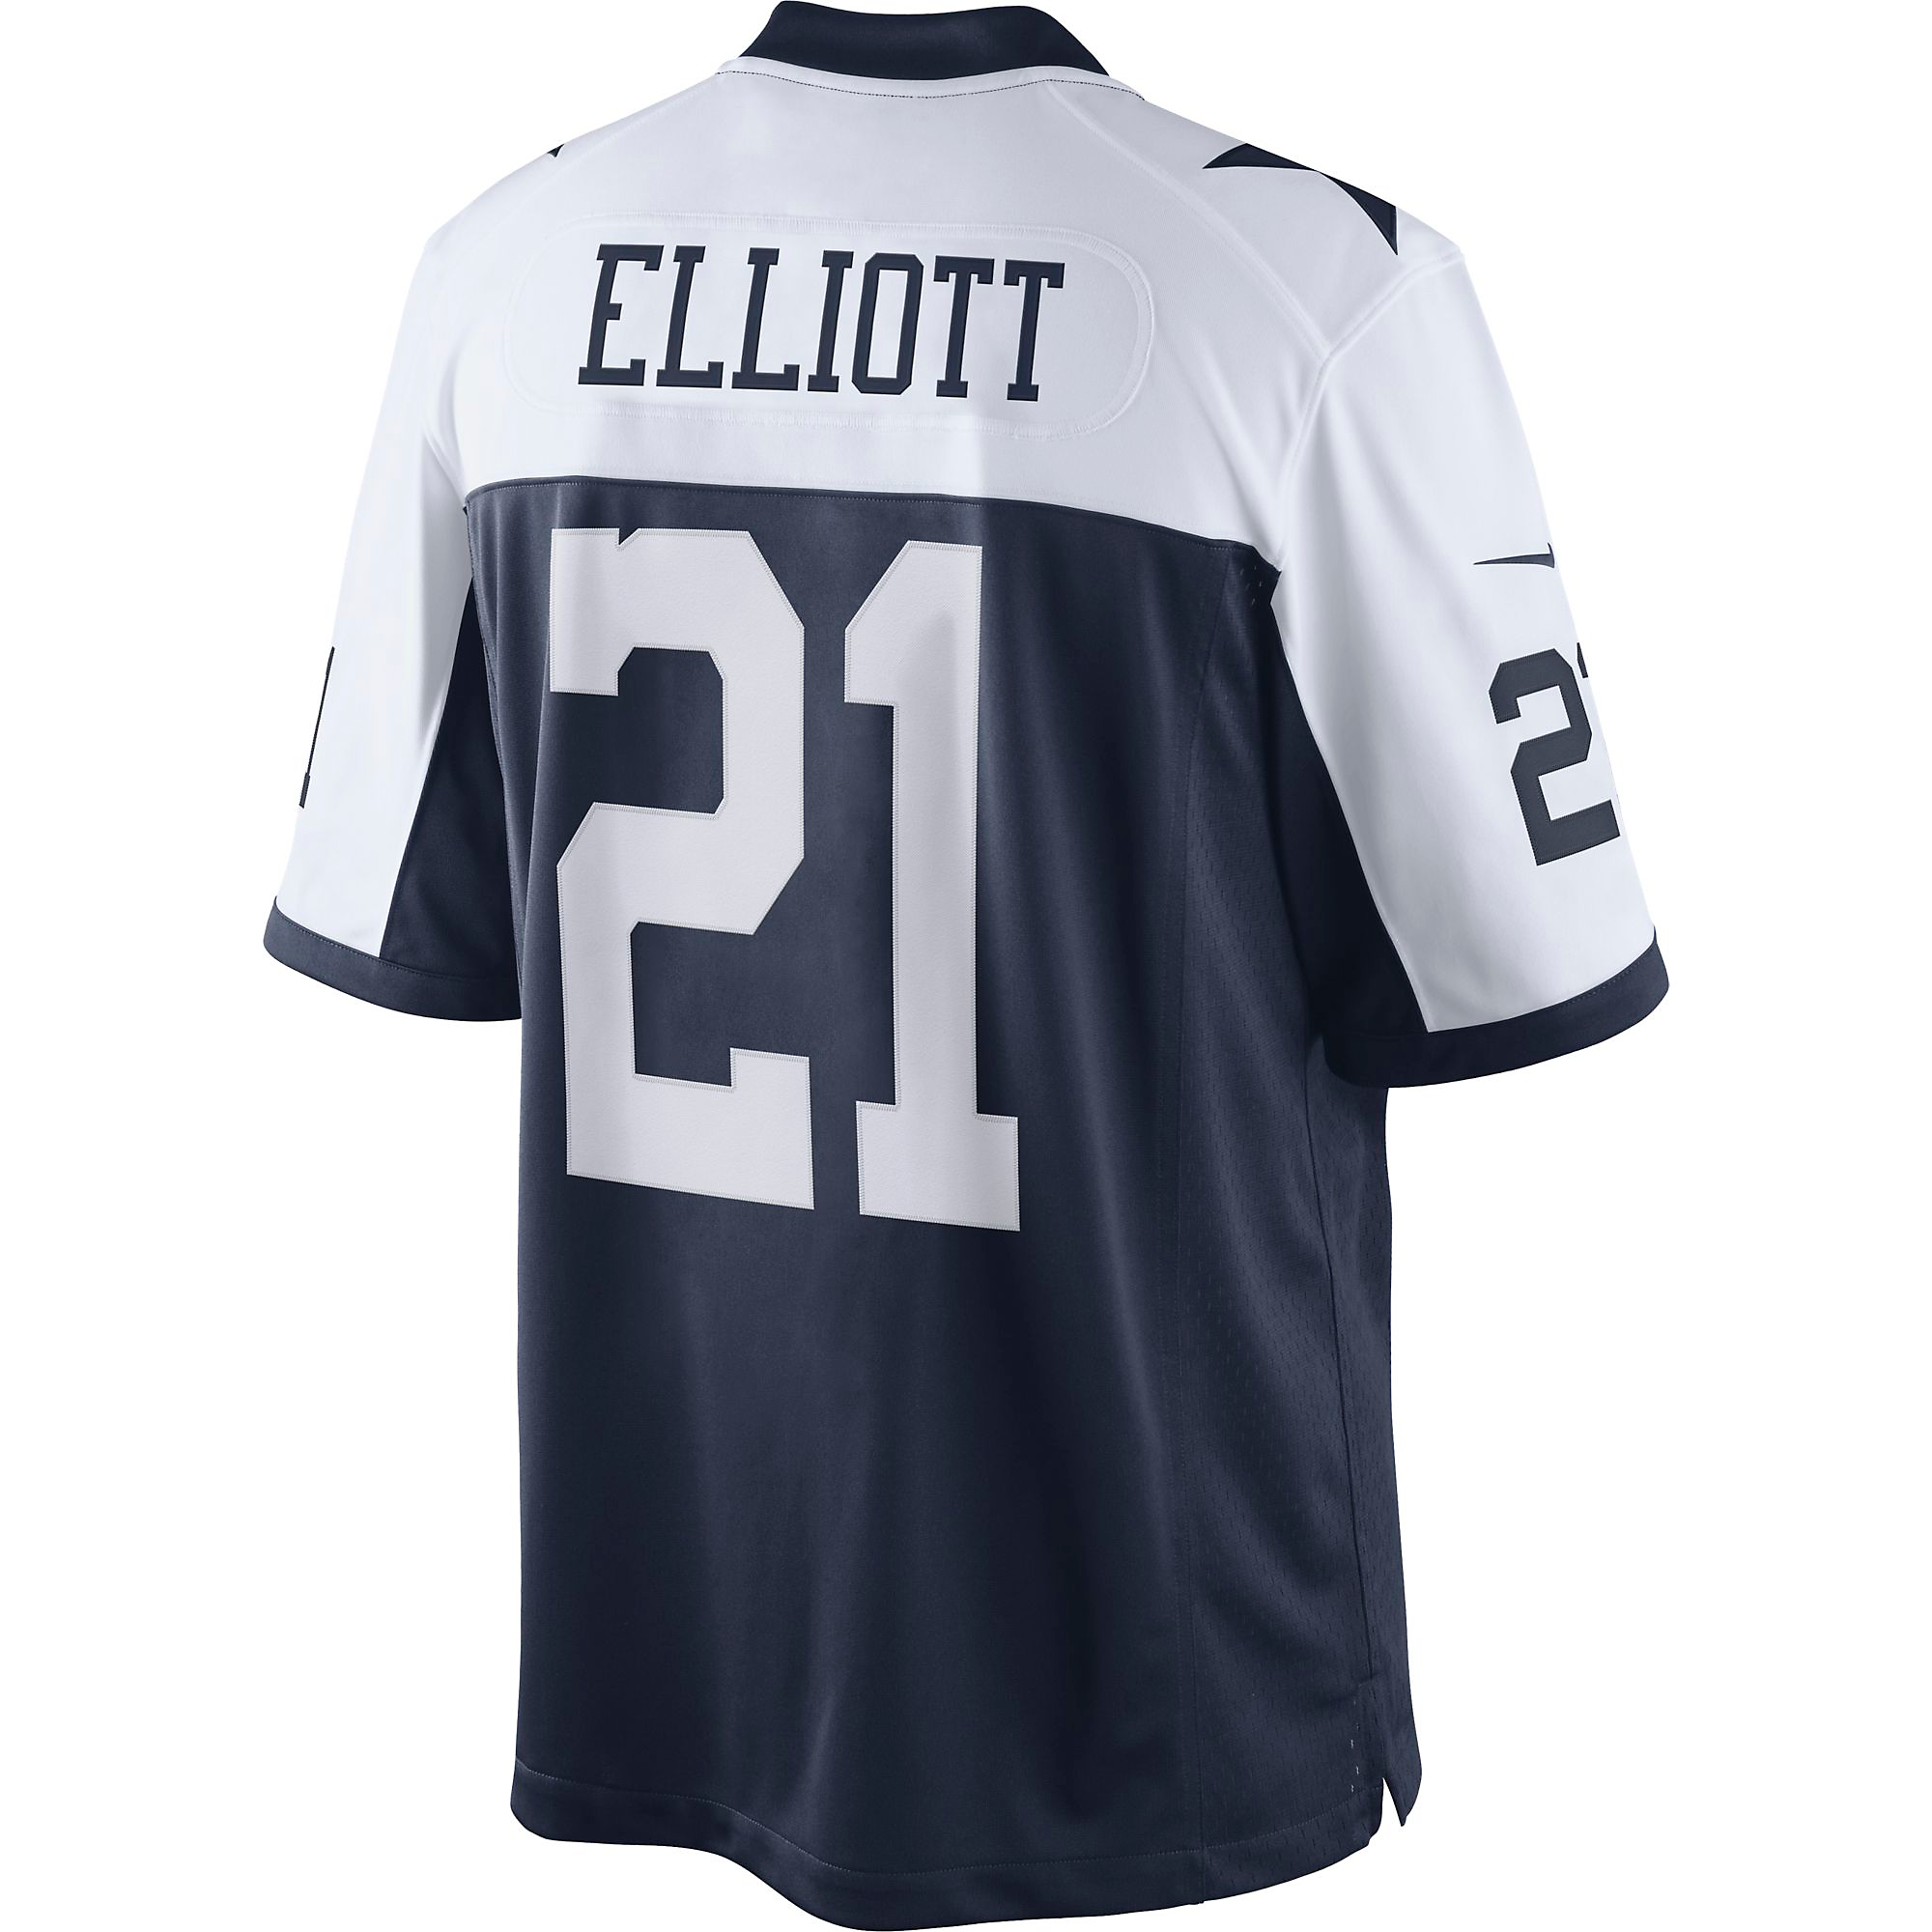 buy online 2c82d 8842d Dallas Cowboys Ezekiel Elliott #21 Nike Throwback Limited ...